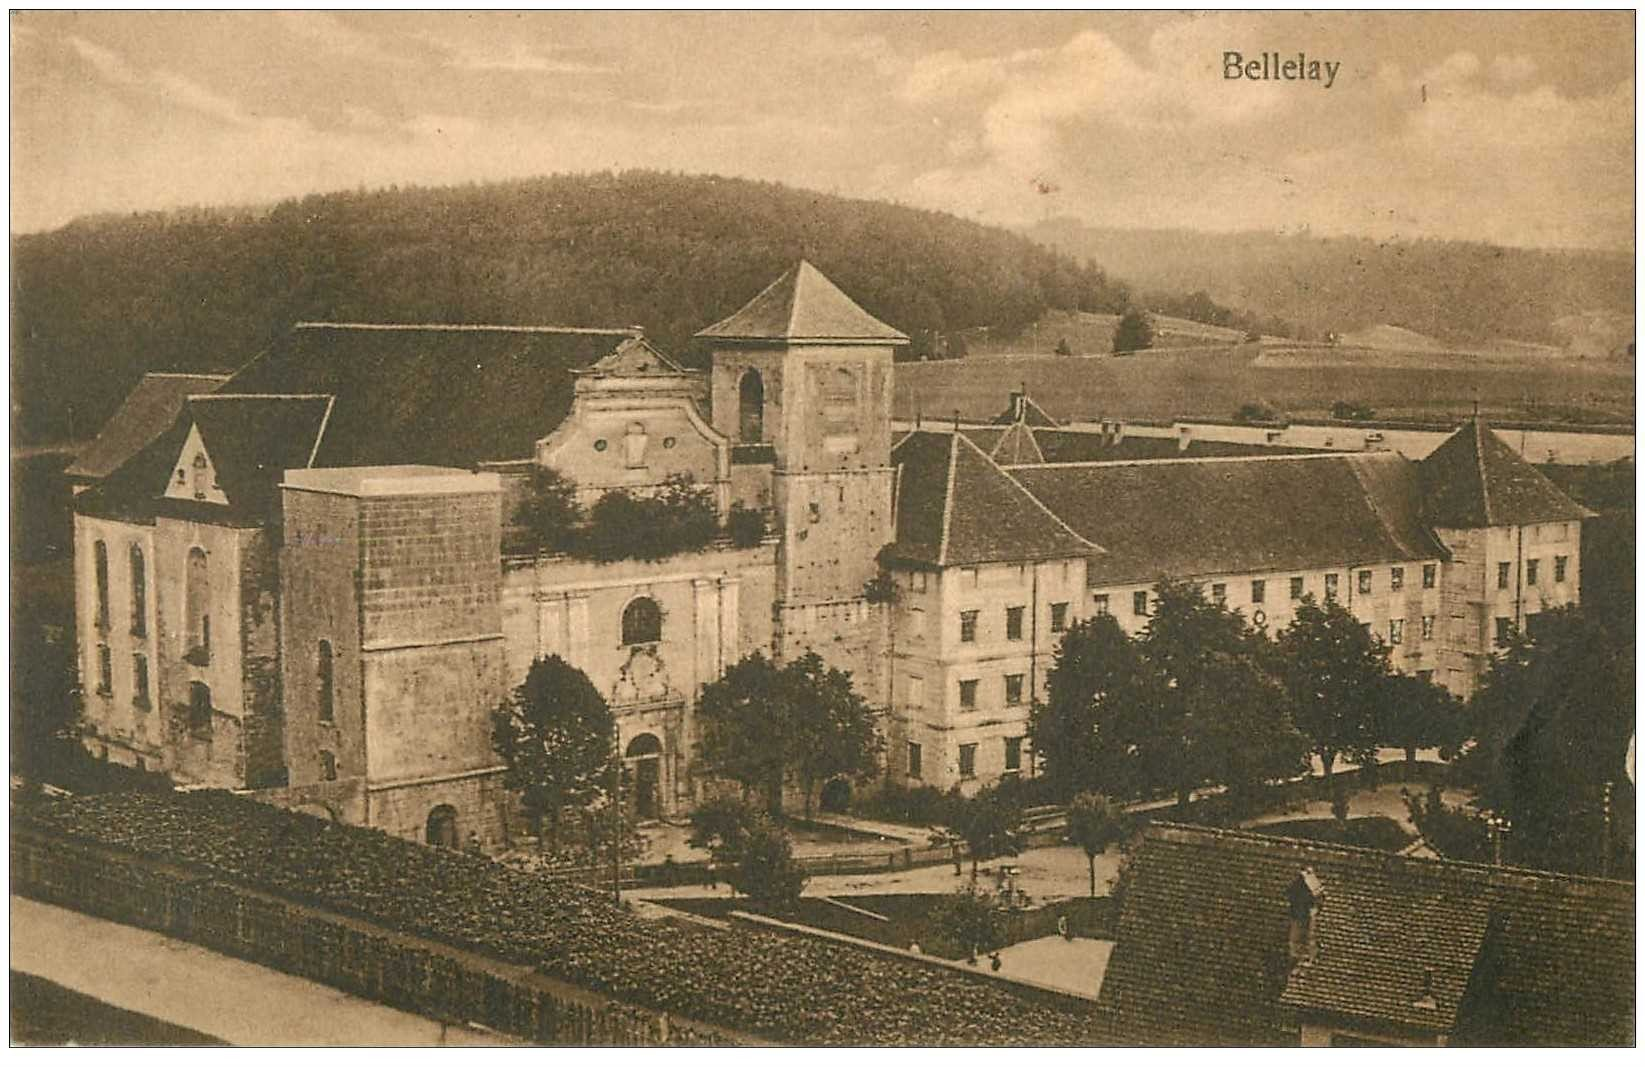 SUISSE. Bellelay 1924